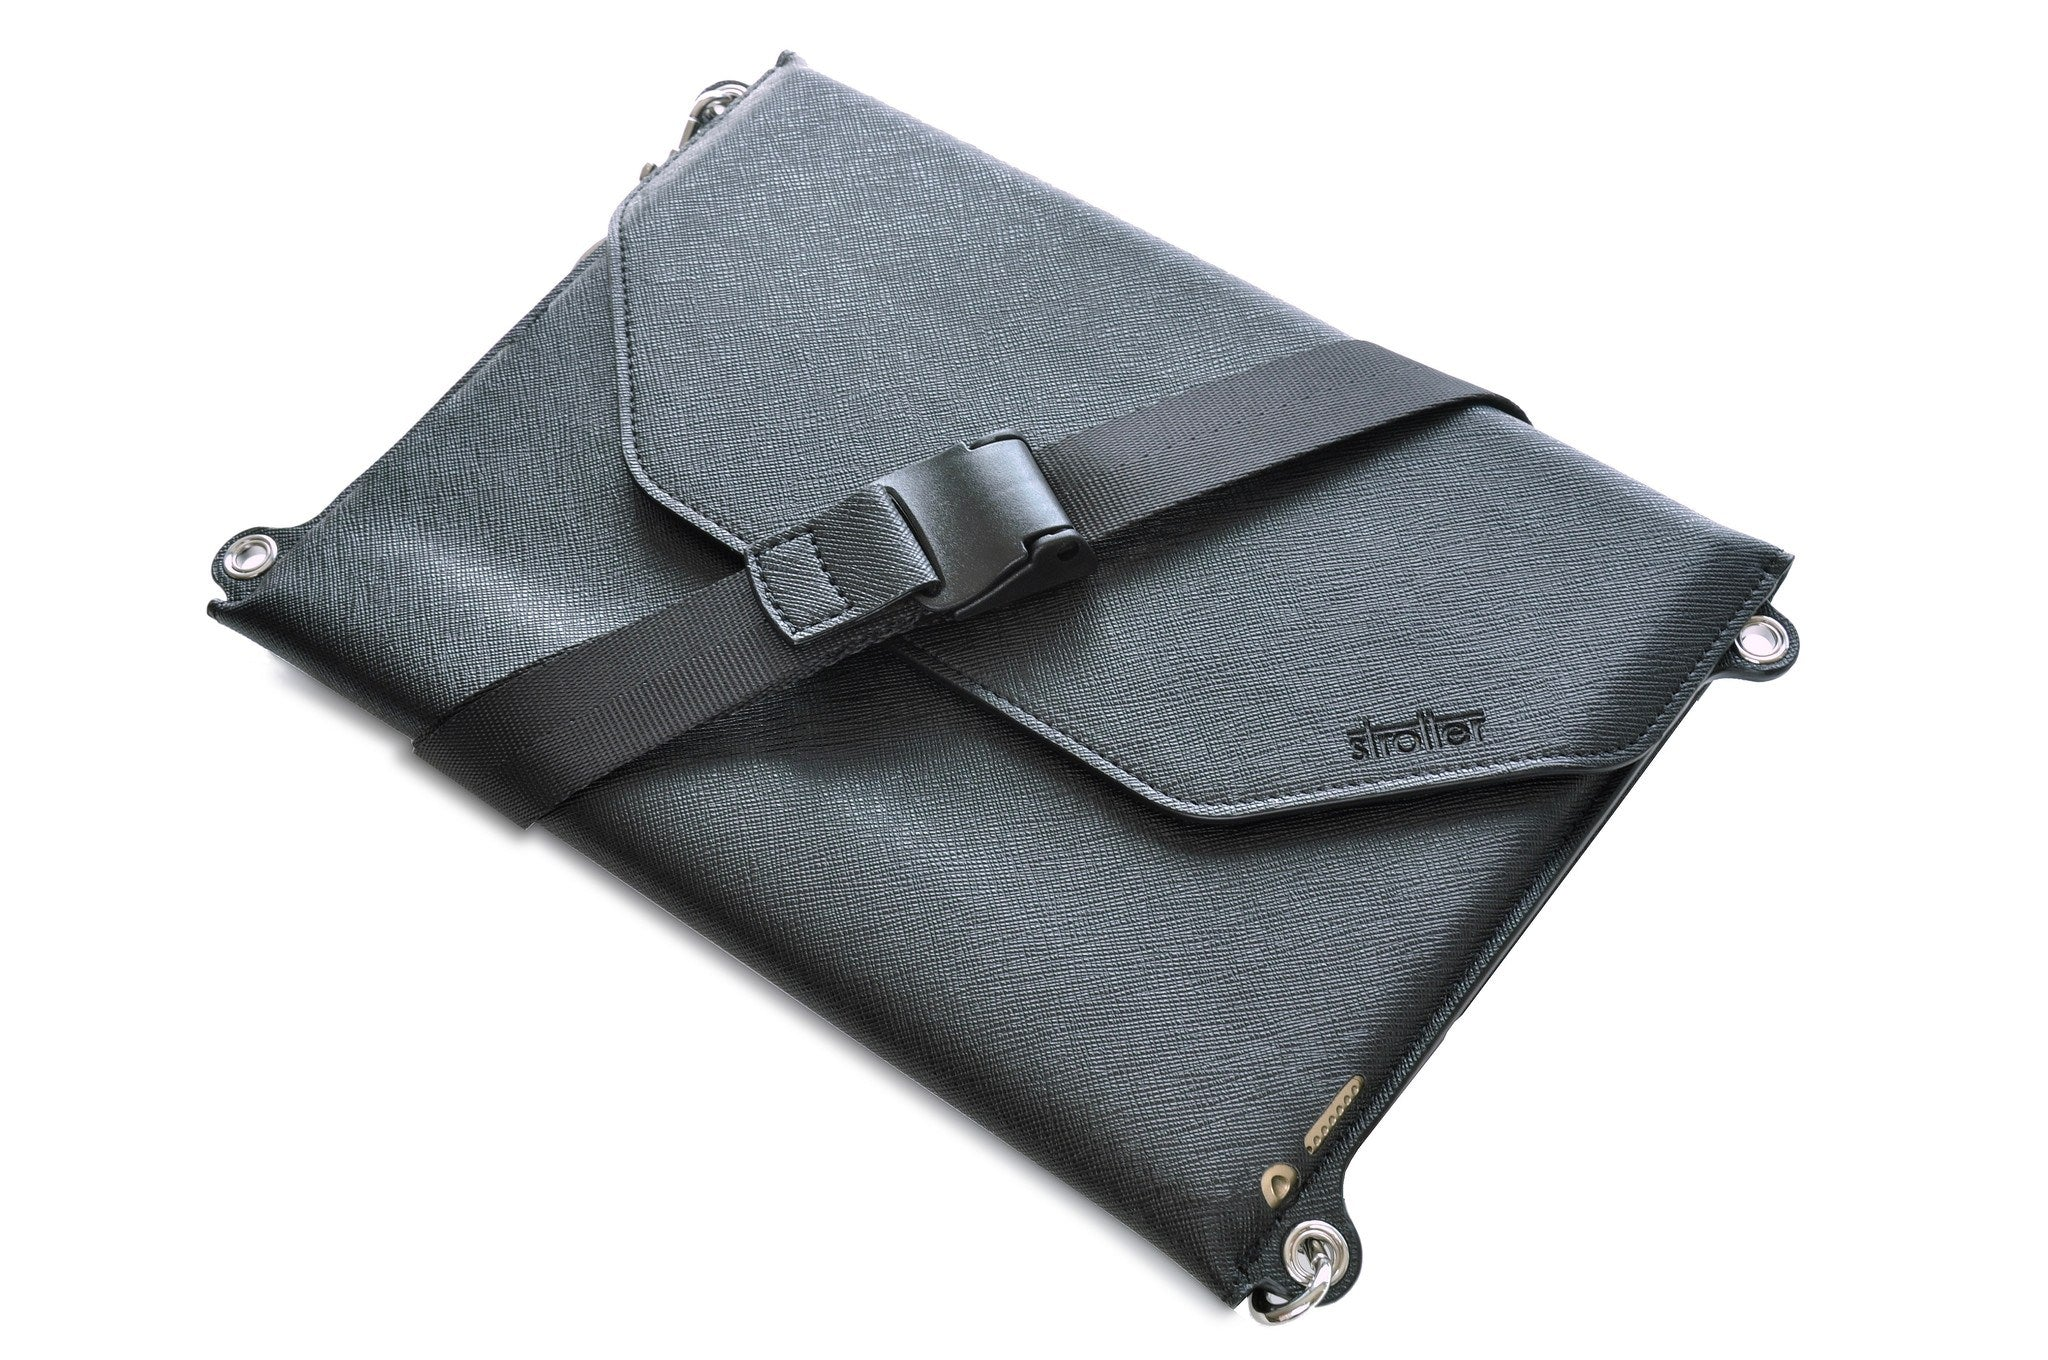 Synthetic leather carrying case with shoulder strap for iPad Pro 9.7""